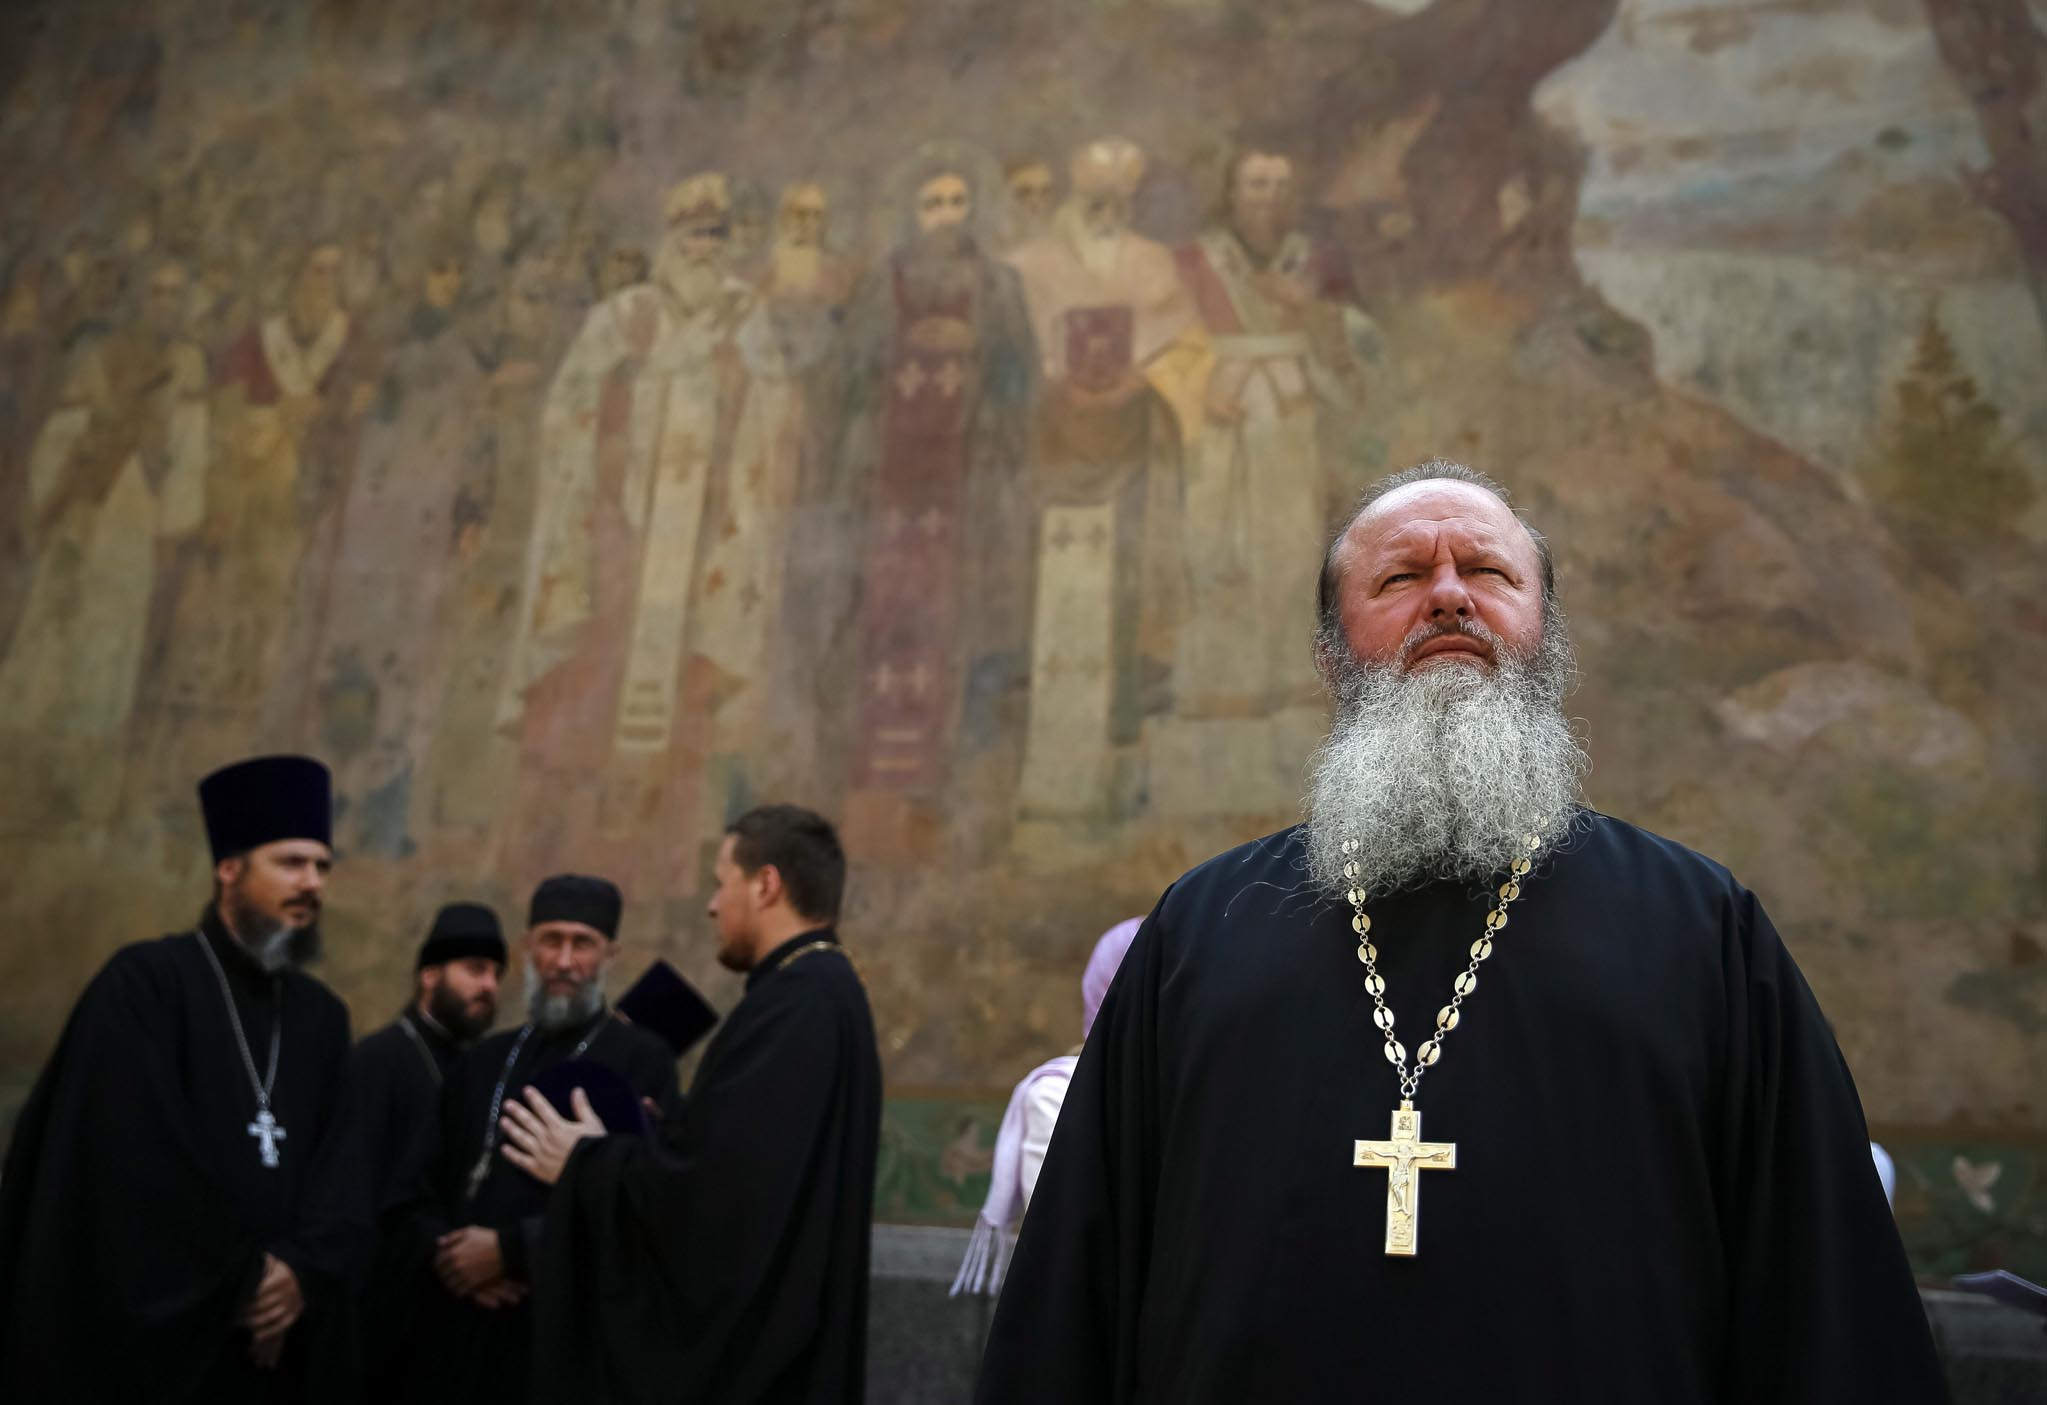 Clergymen attend a service near the Kiev Pechersk Lavra monastery on the day of the election of the Primate of the Ukrainian Orthodox Church of the Moscow Patriarchate, in Kiev August 13, 2014. Former Primate of the Ukrainian Orthodox Church of the Moscow Patriarchate, Metropolitan Vladimir of Kiev and All Ukraine died on July 5. REUTERS/Gleb Garanich (UKRAINE - Tags: RELIGION TPX IMAGES OF THE DAY)